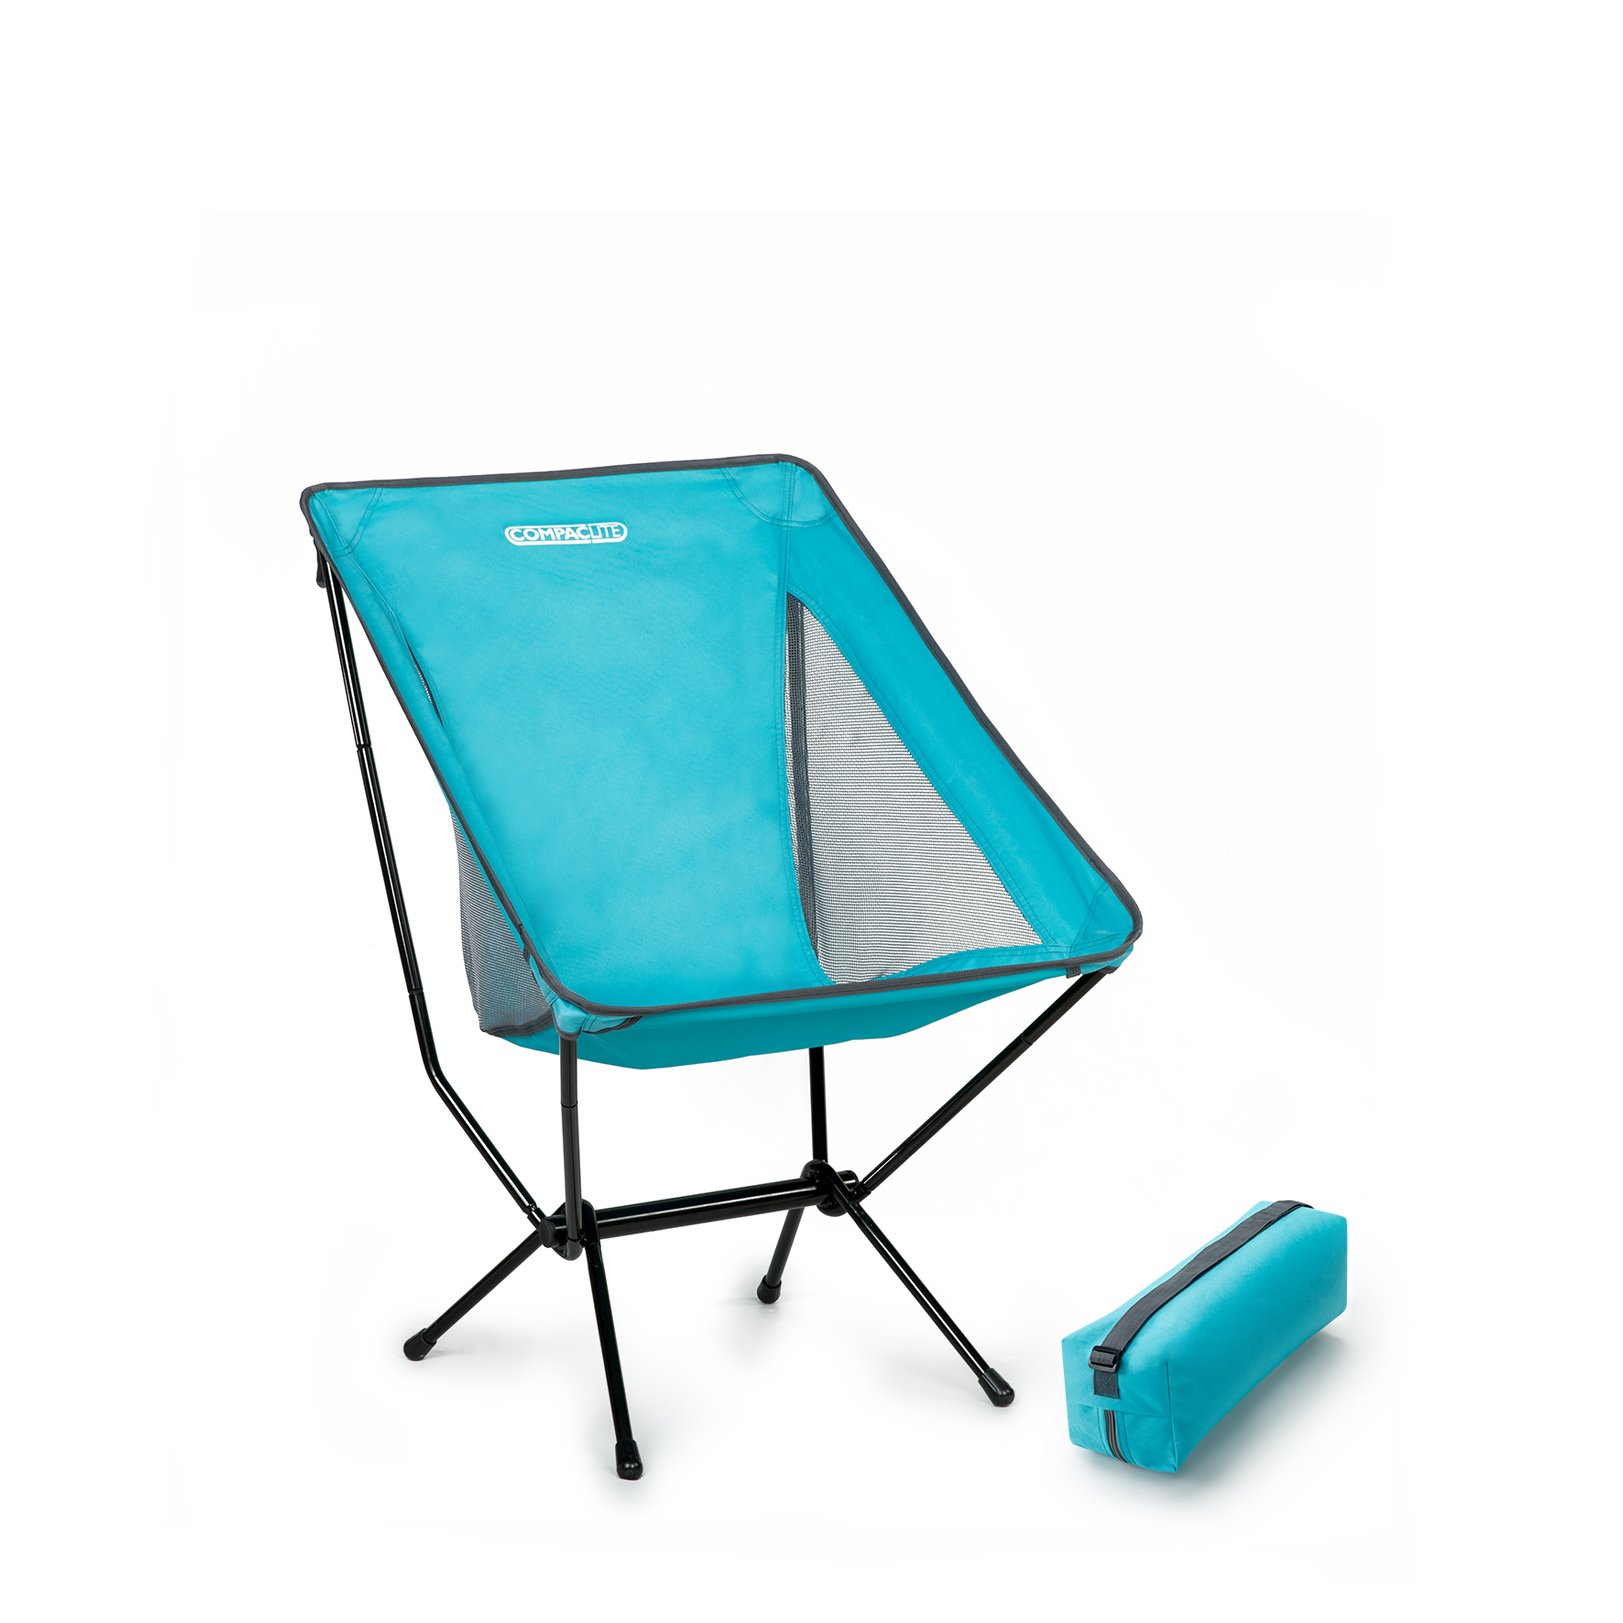 Compaclite Steel Camping Portable Chair with mesh Side Panels and Carry Bag, Deluxe - Bright Blue